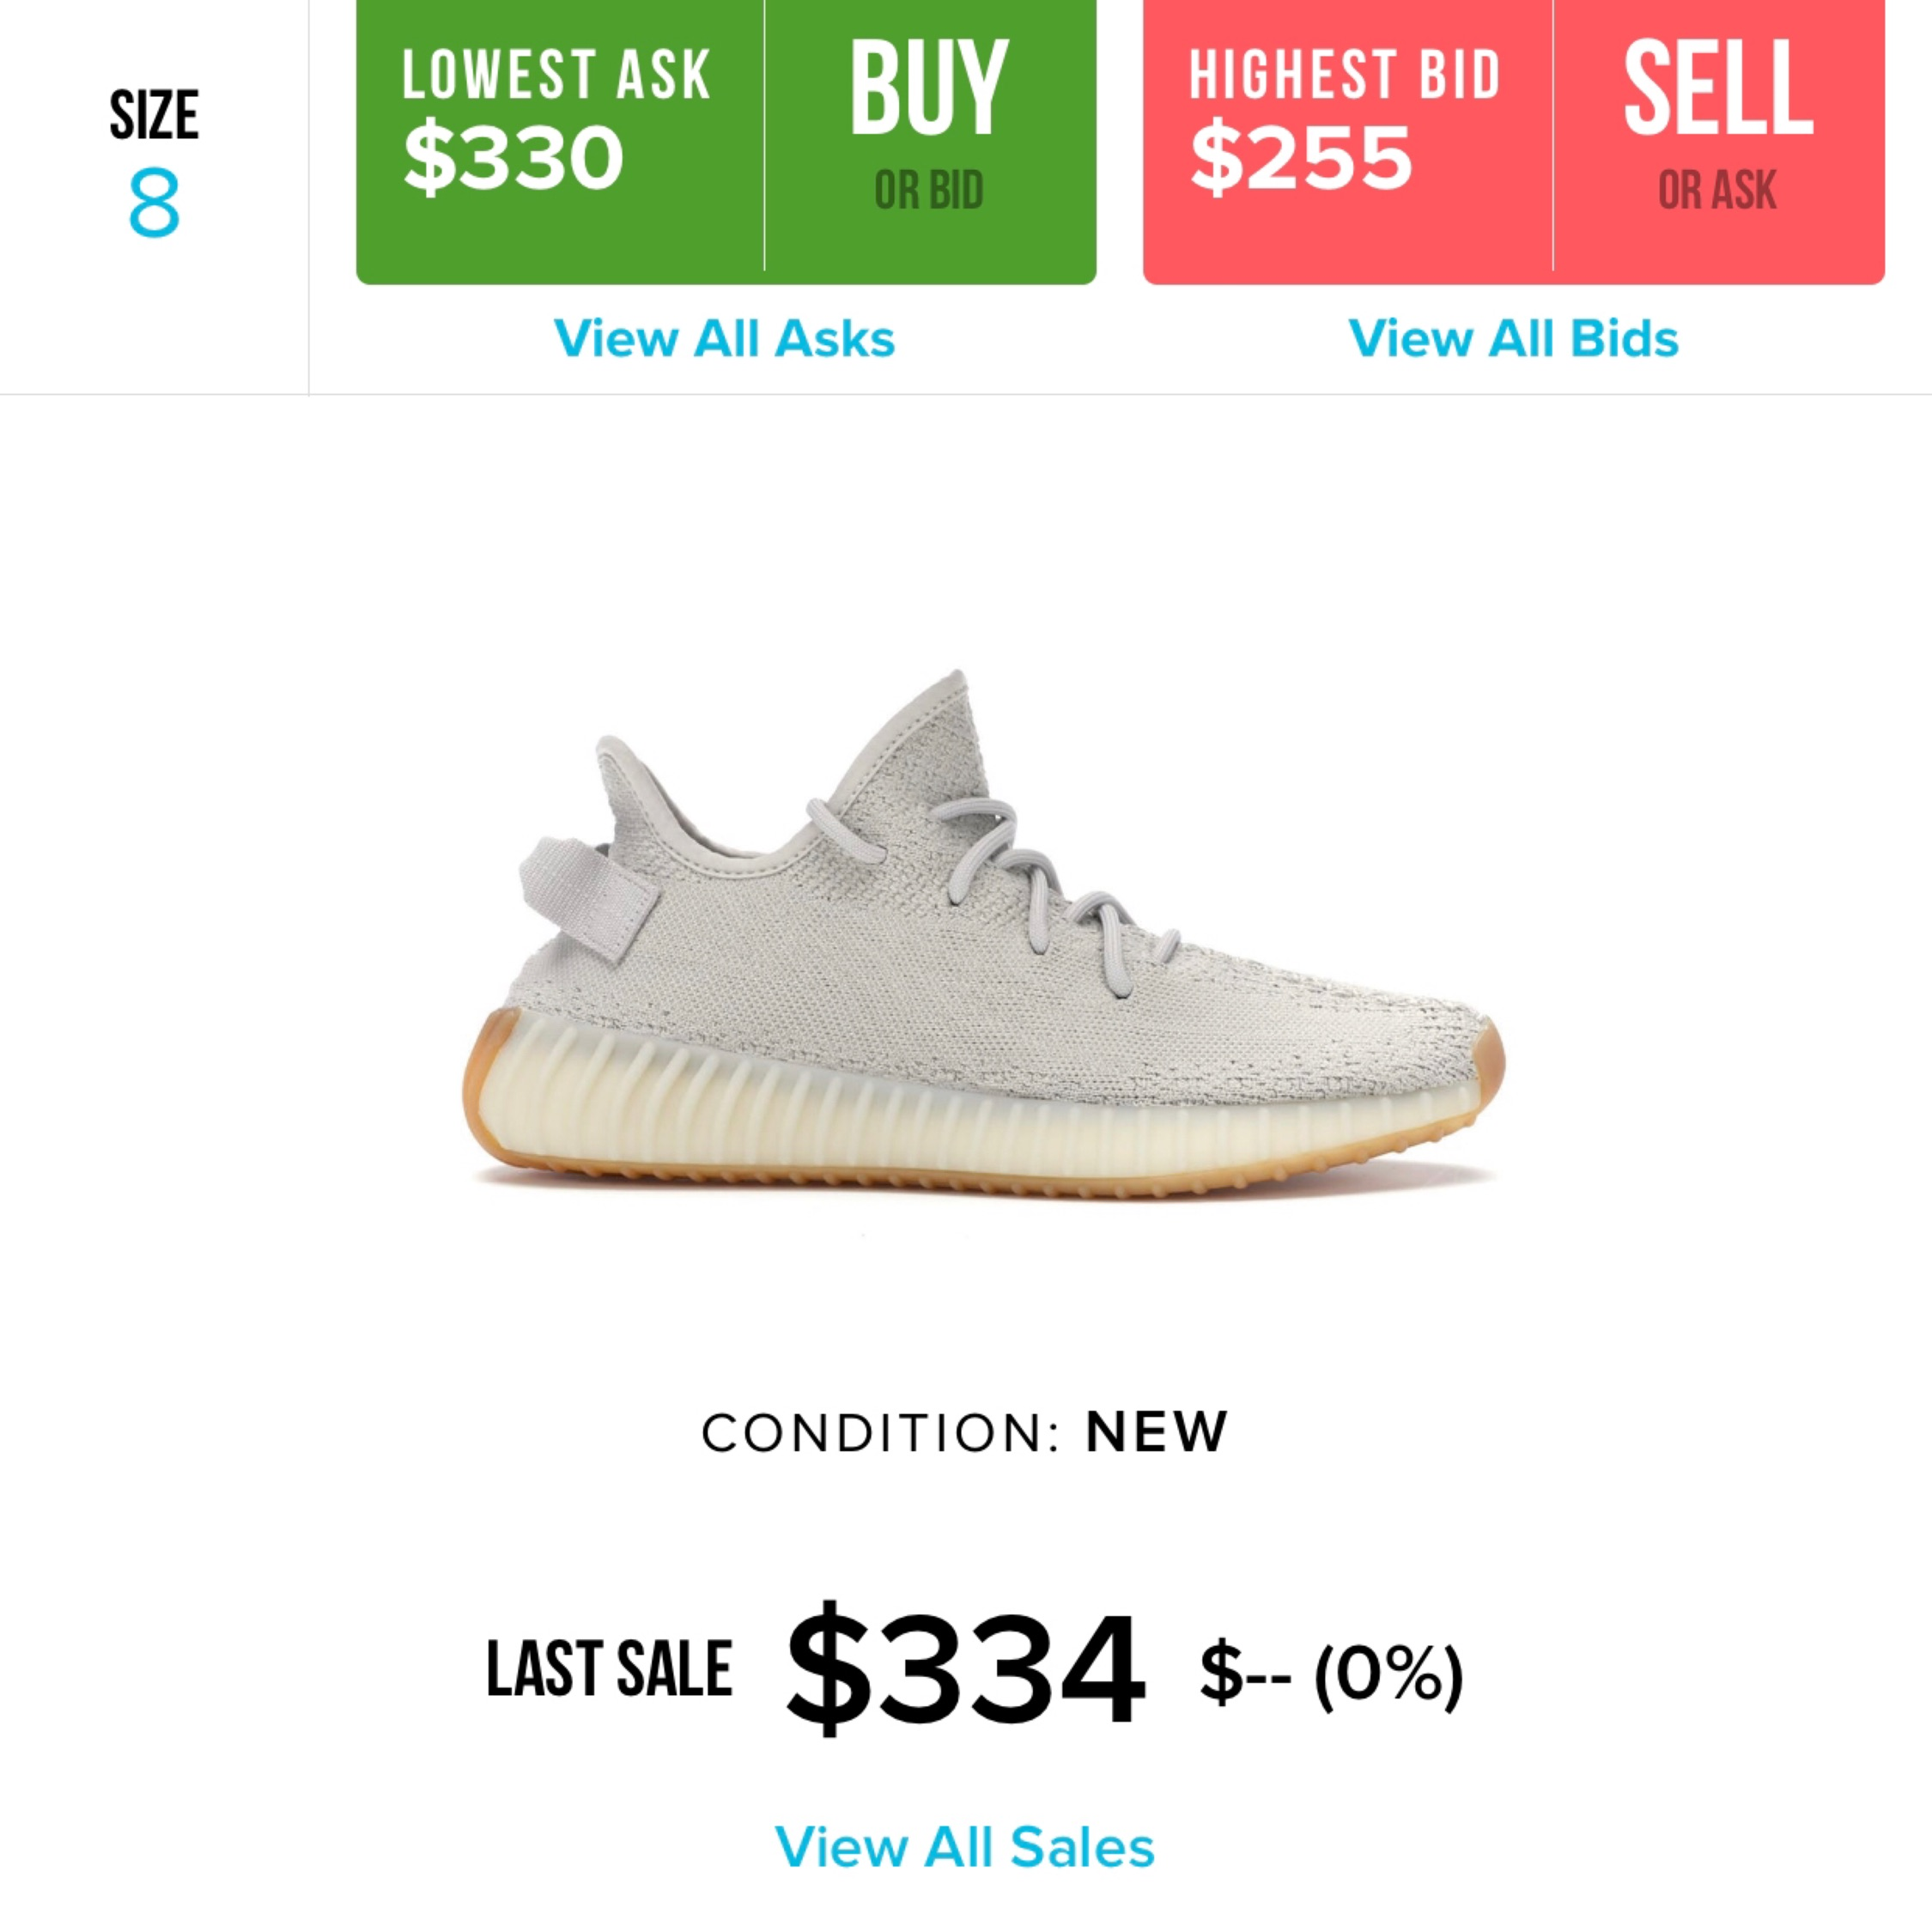 separation shoes 5efdd a7193 Yeezy Boost 350 V2 Sesame